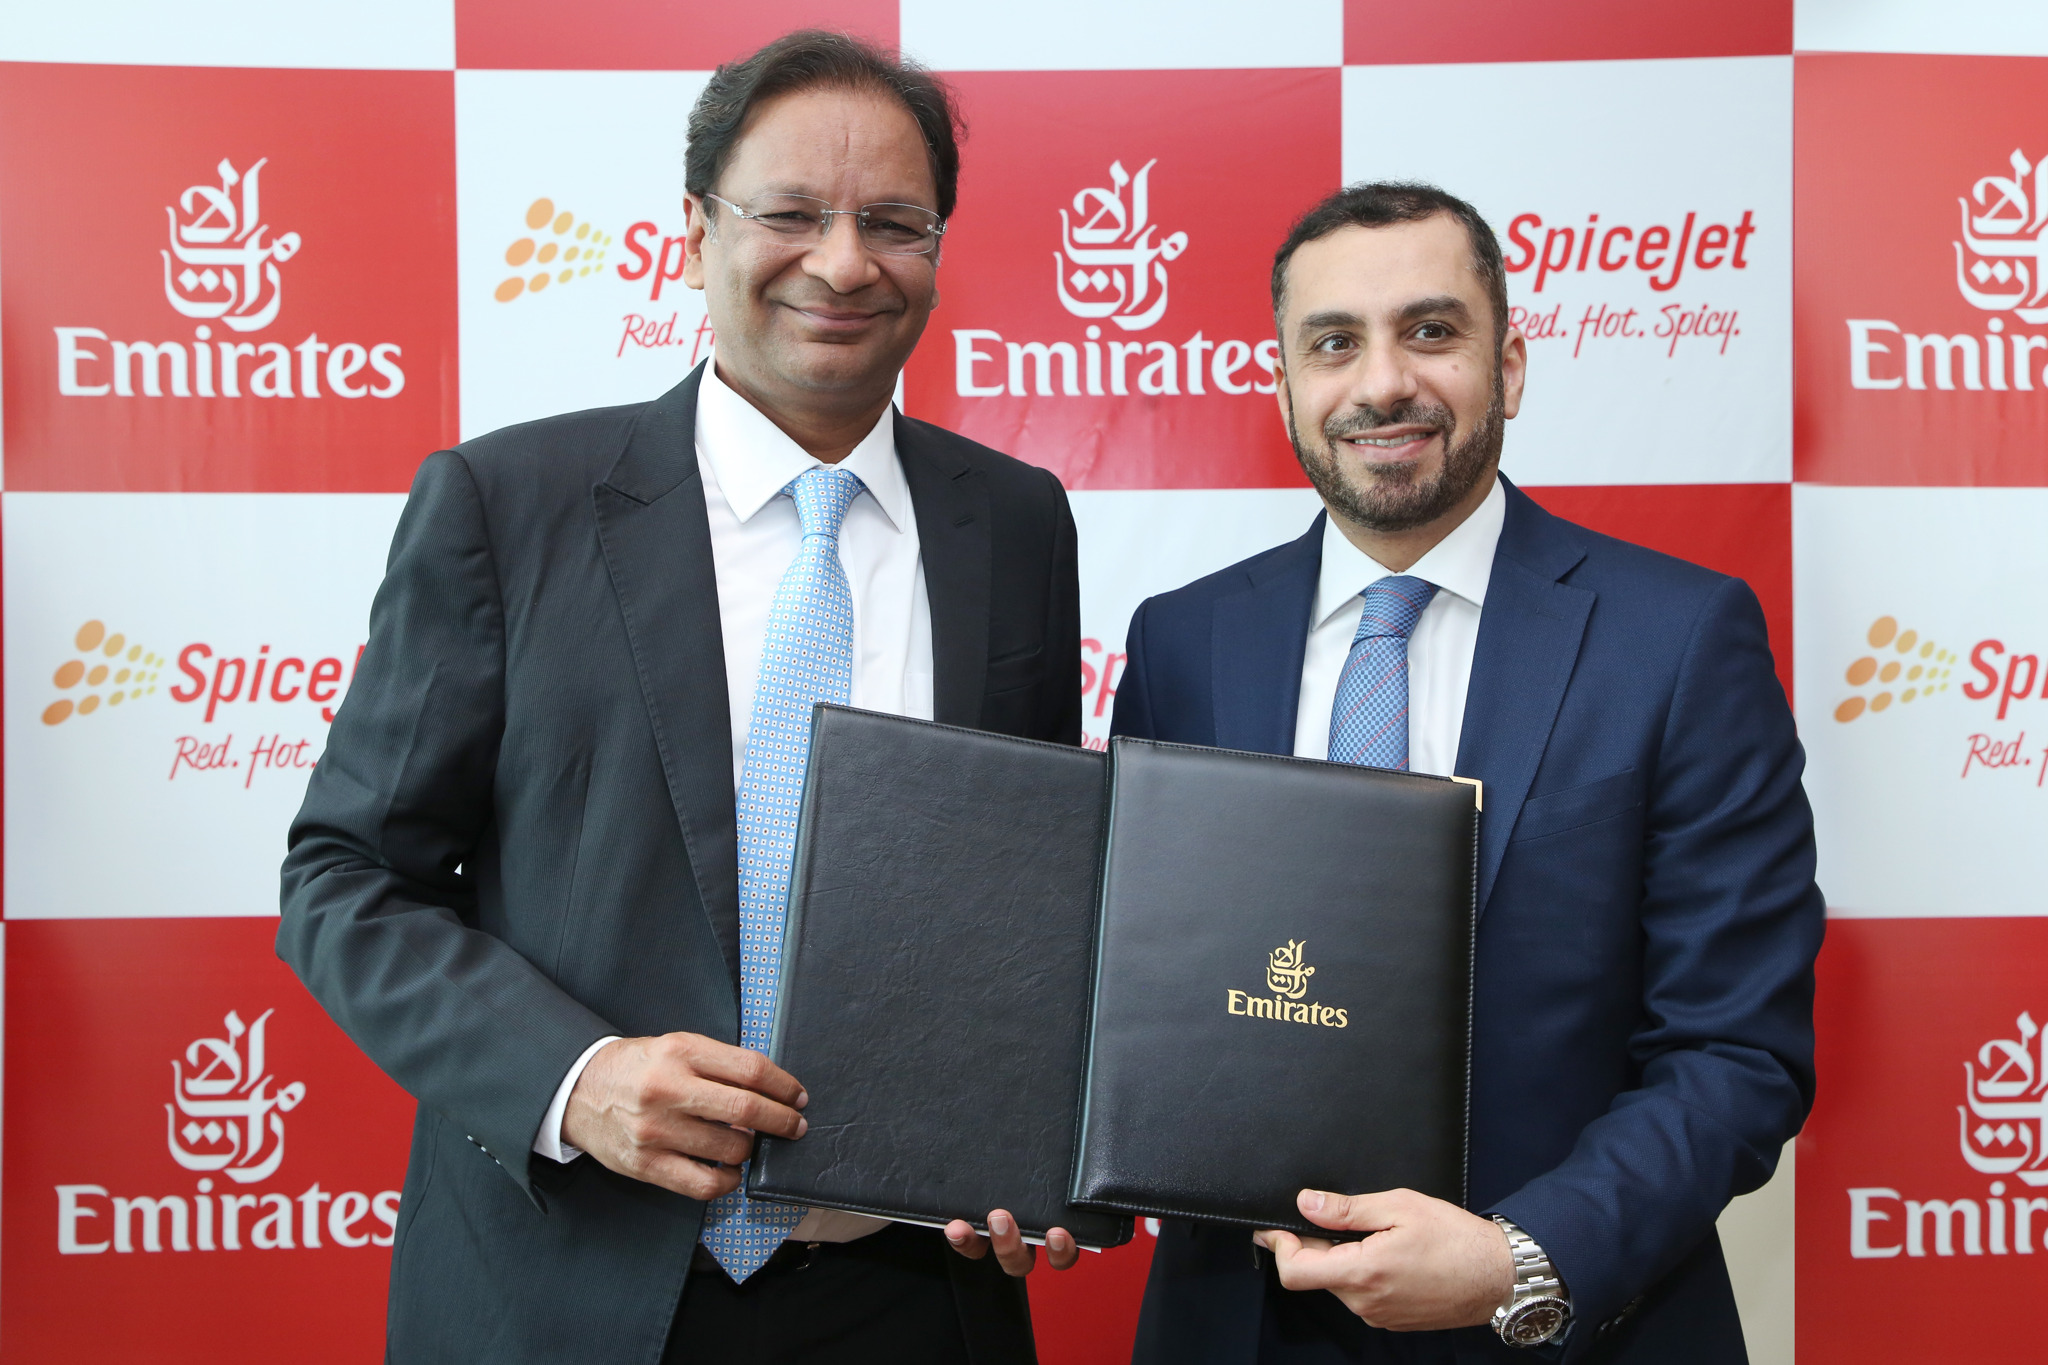 Emirates to expand reach in India with SpiceJet codeshare